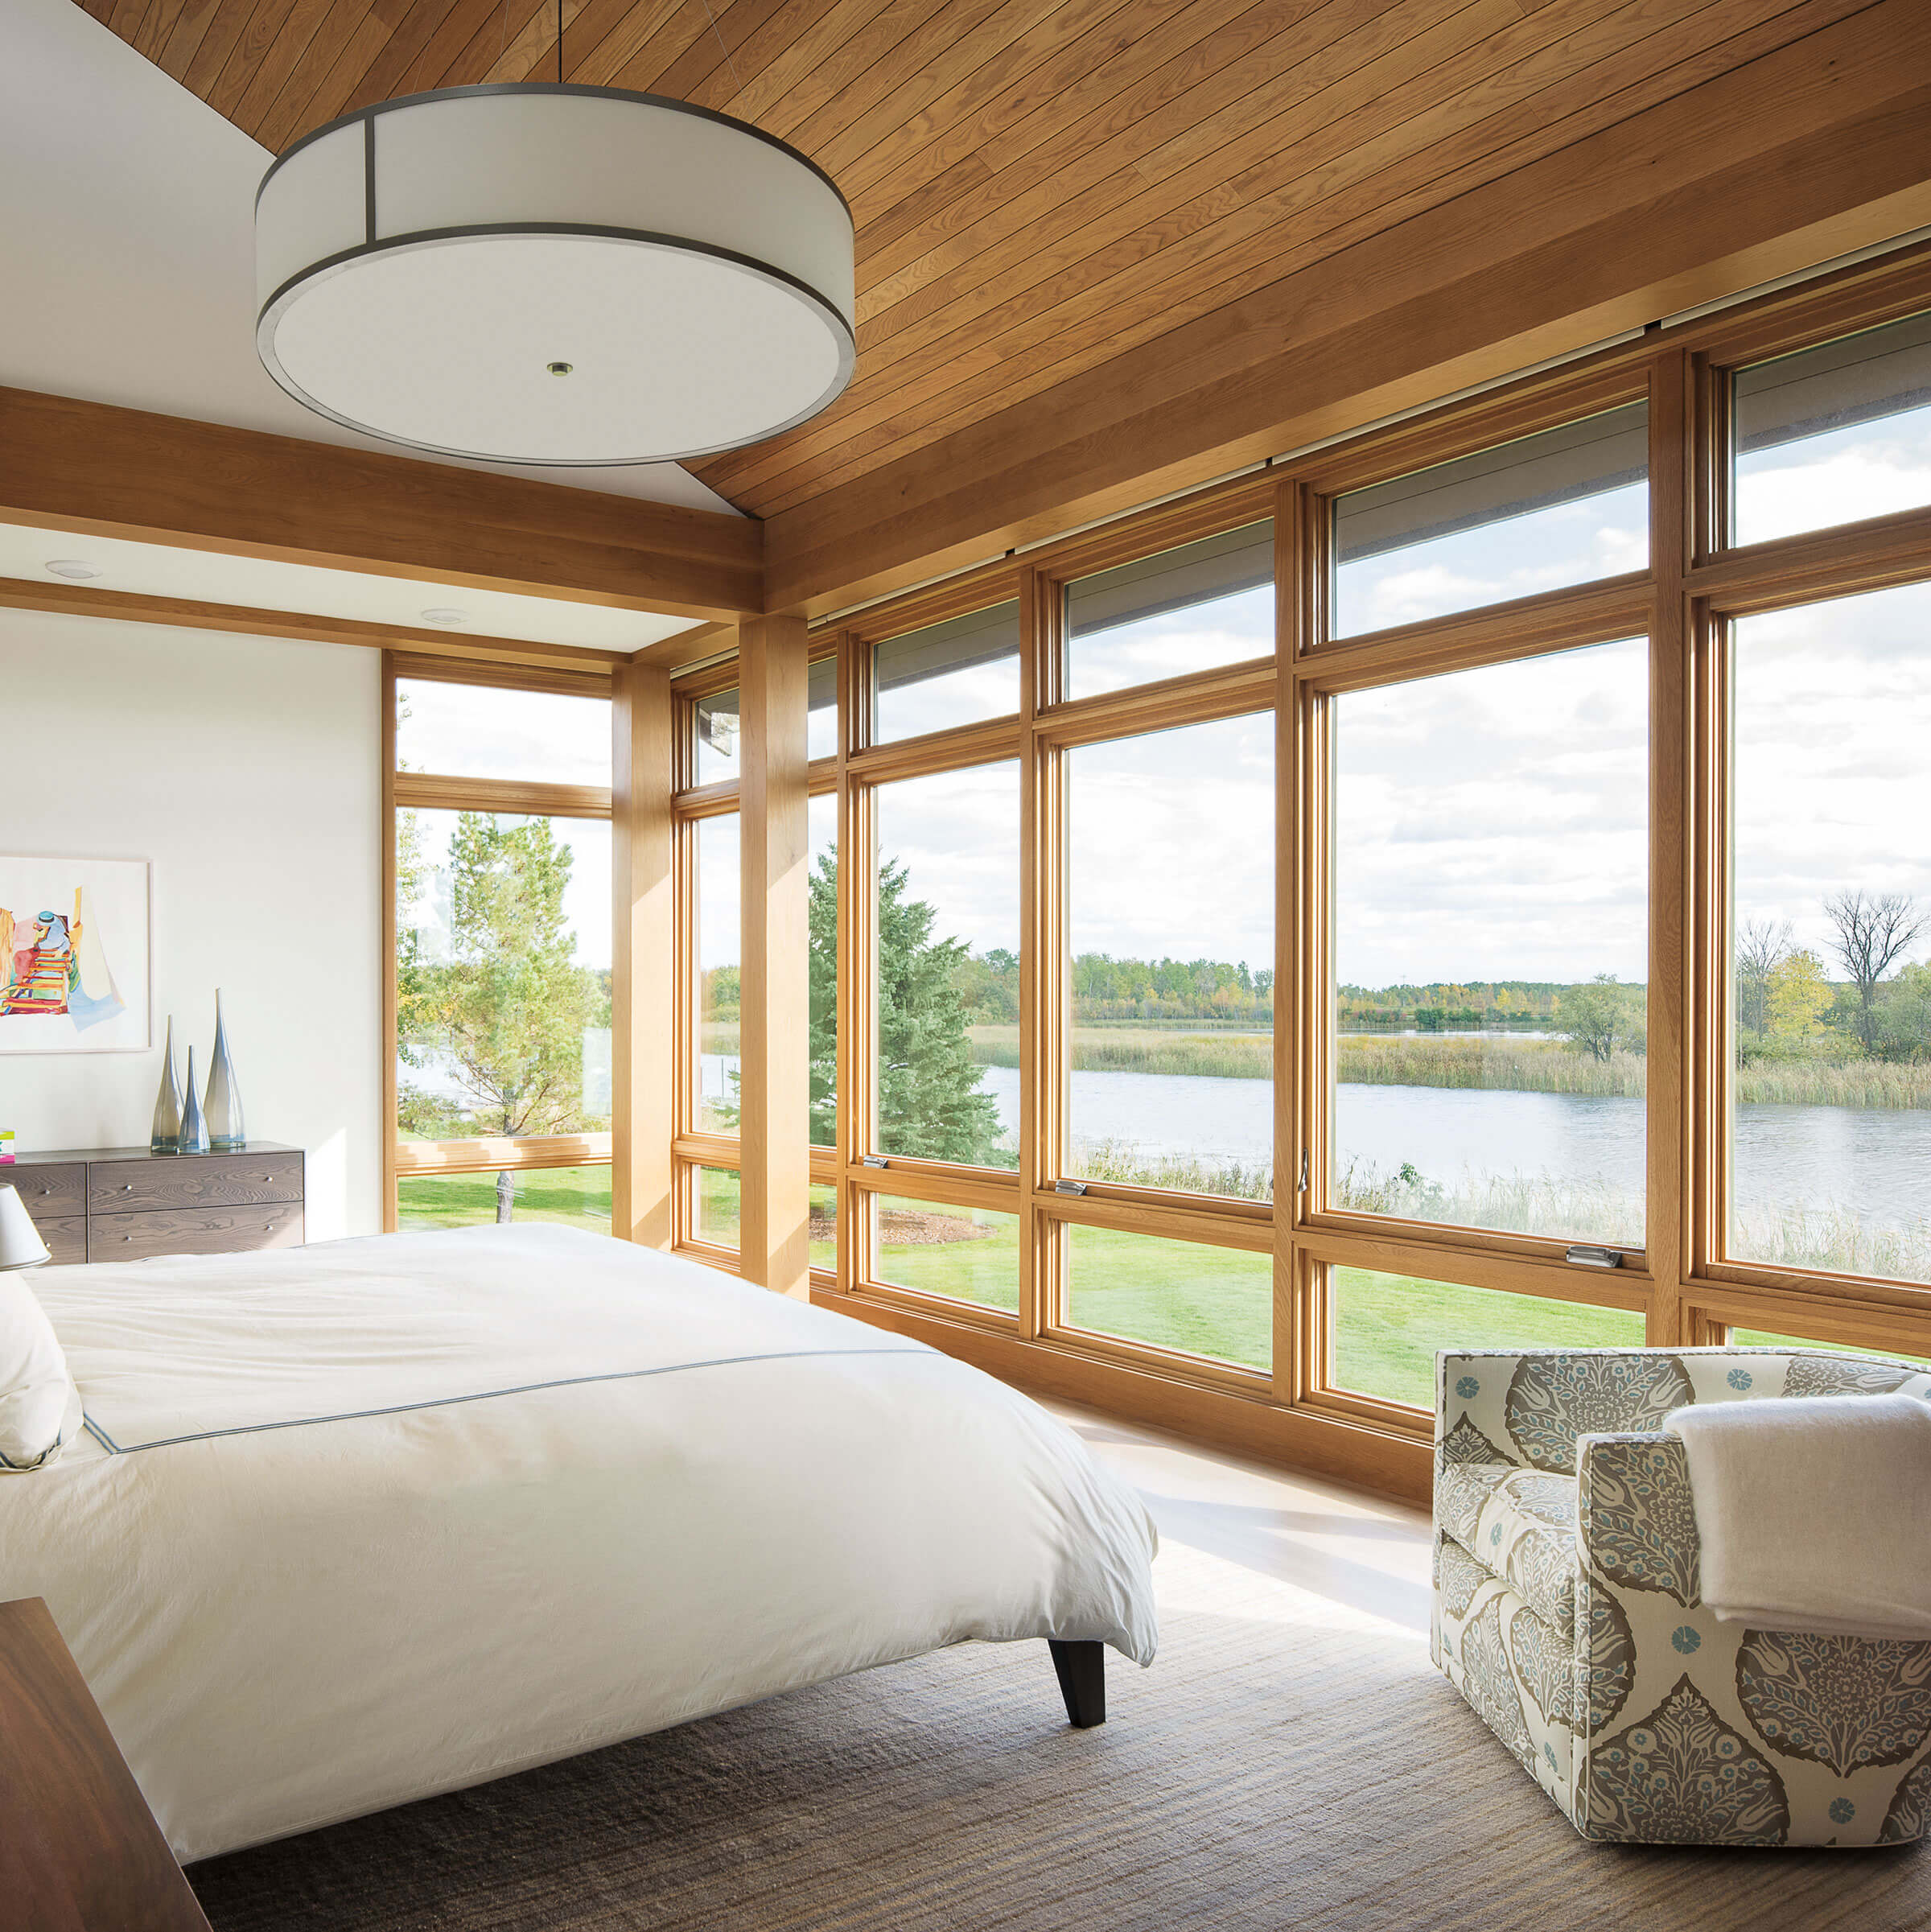 Bedroom With View Of River Through Signature Ultimate Casement Windows